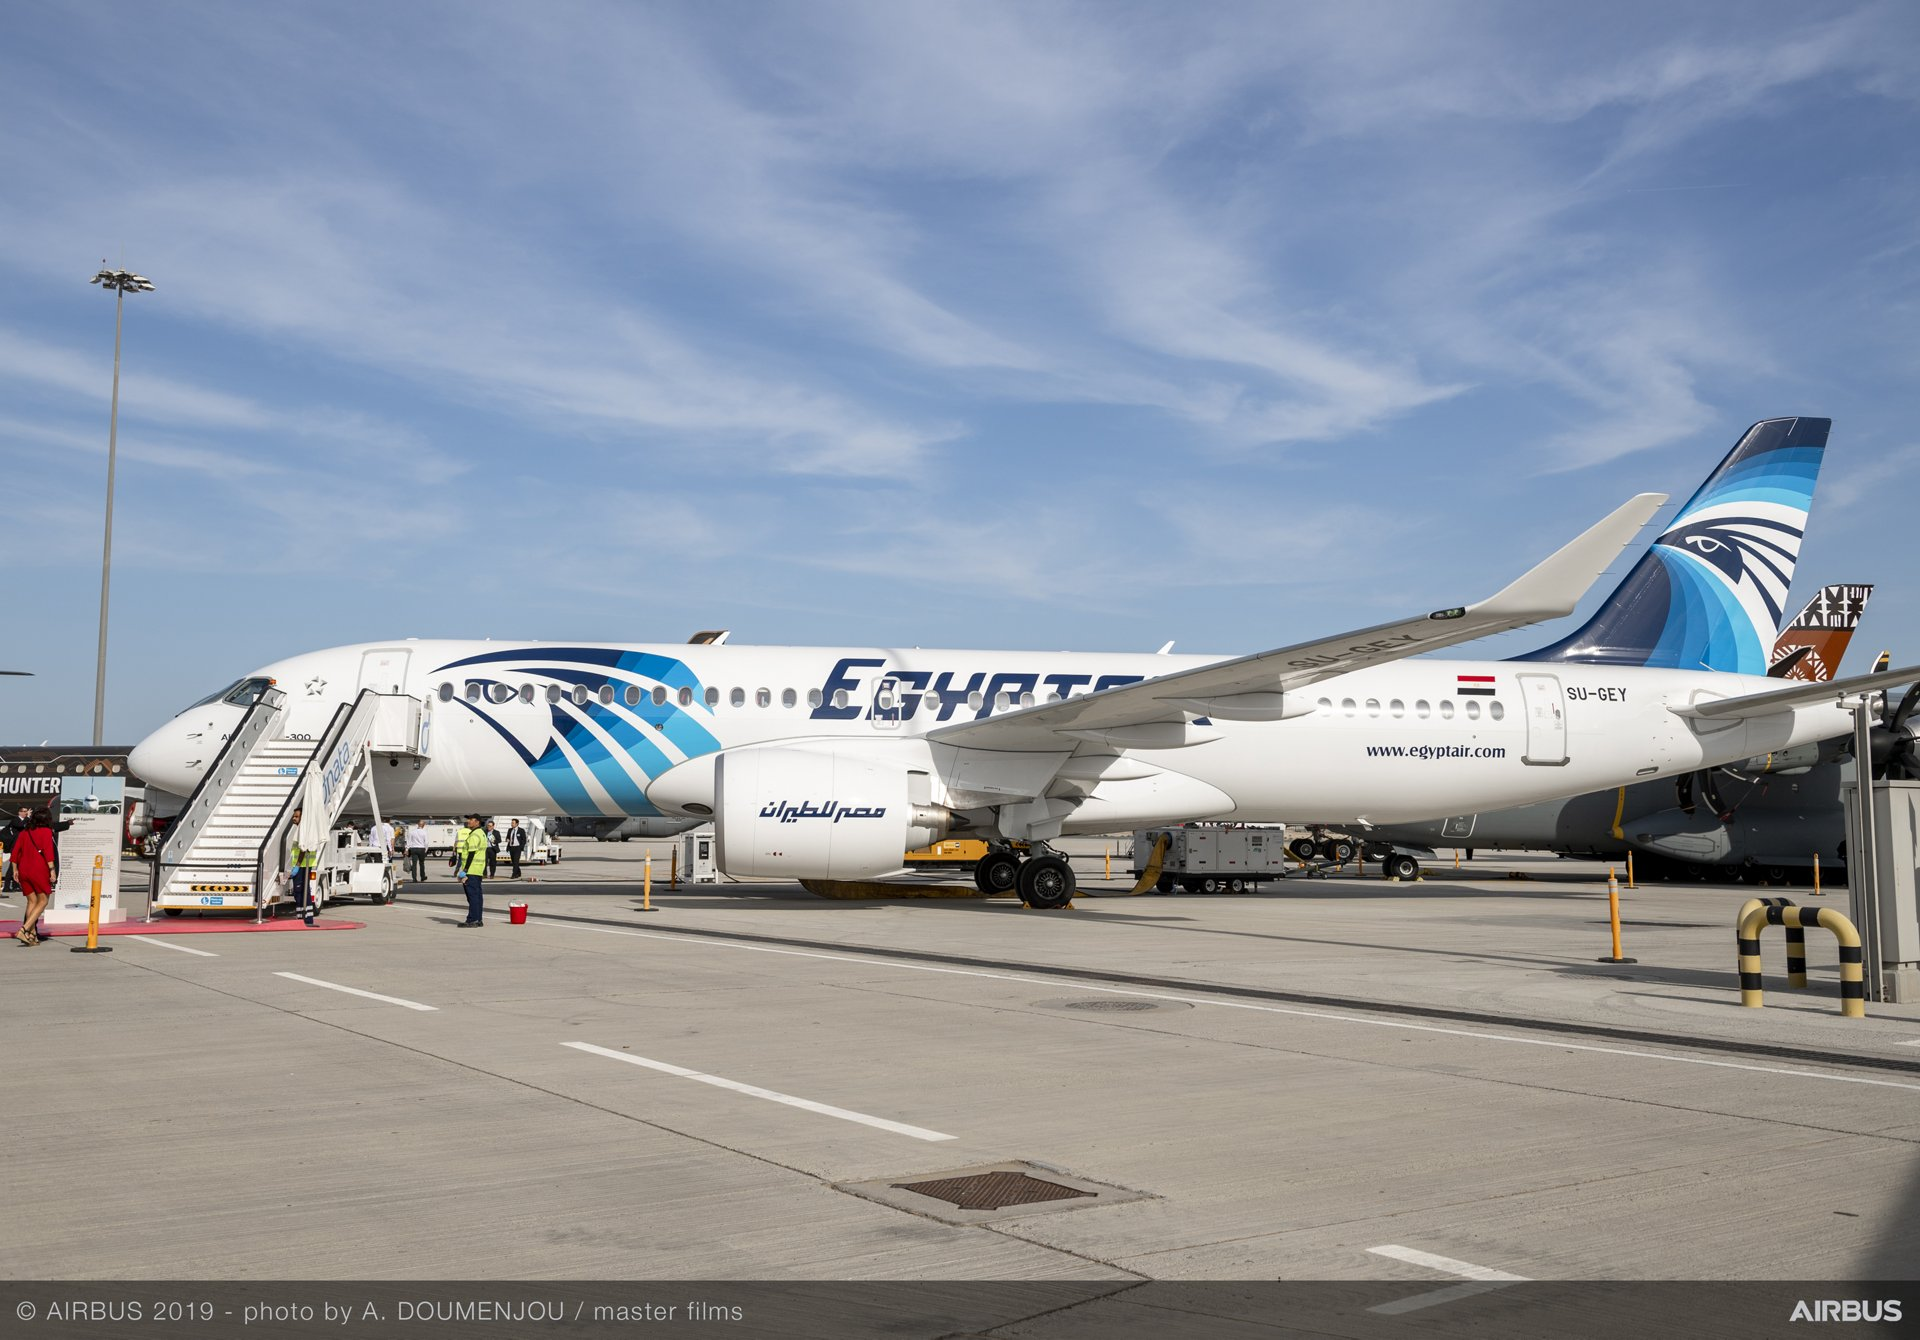 An A220-300 for EGYPTAIR 鈥� which became the first A220 operator based in the Middle East and North African region earlier this year 鈥� is among the AG真人计划 commercial aircraft on static display at the 2019 Dubai Airshow